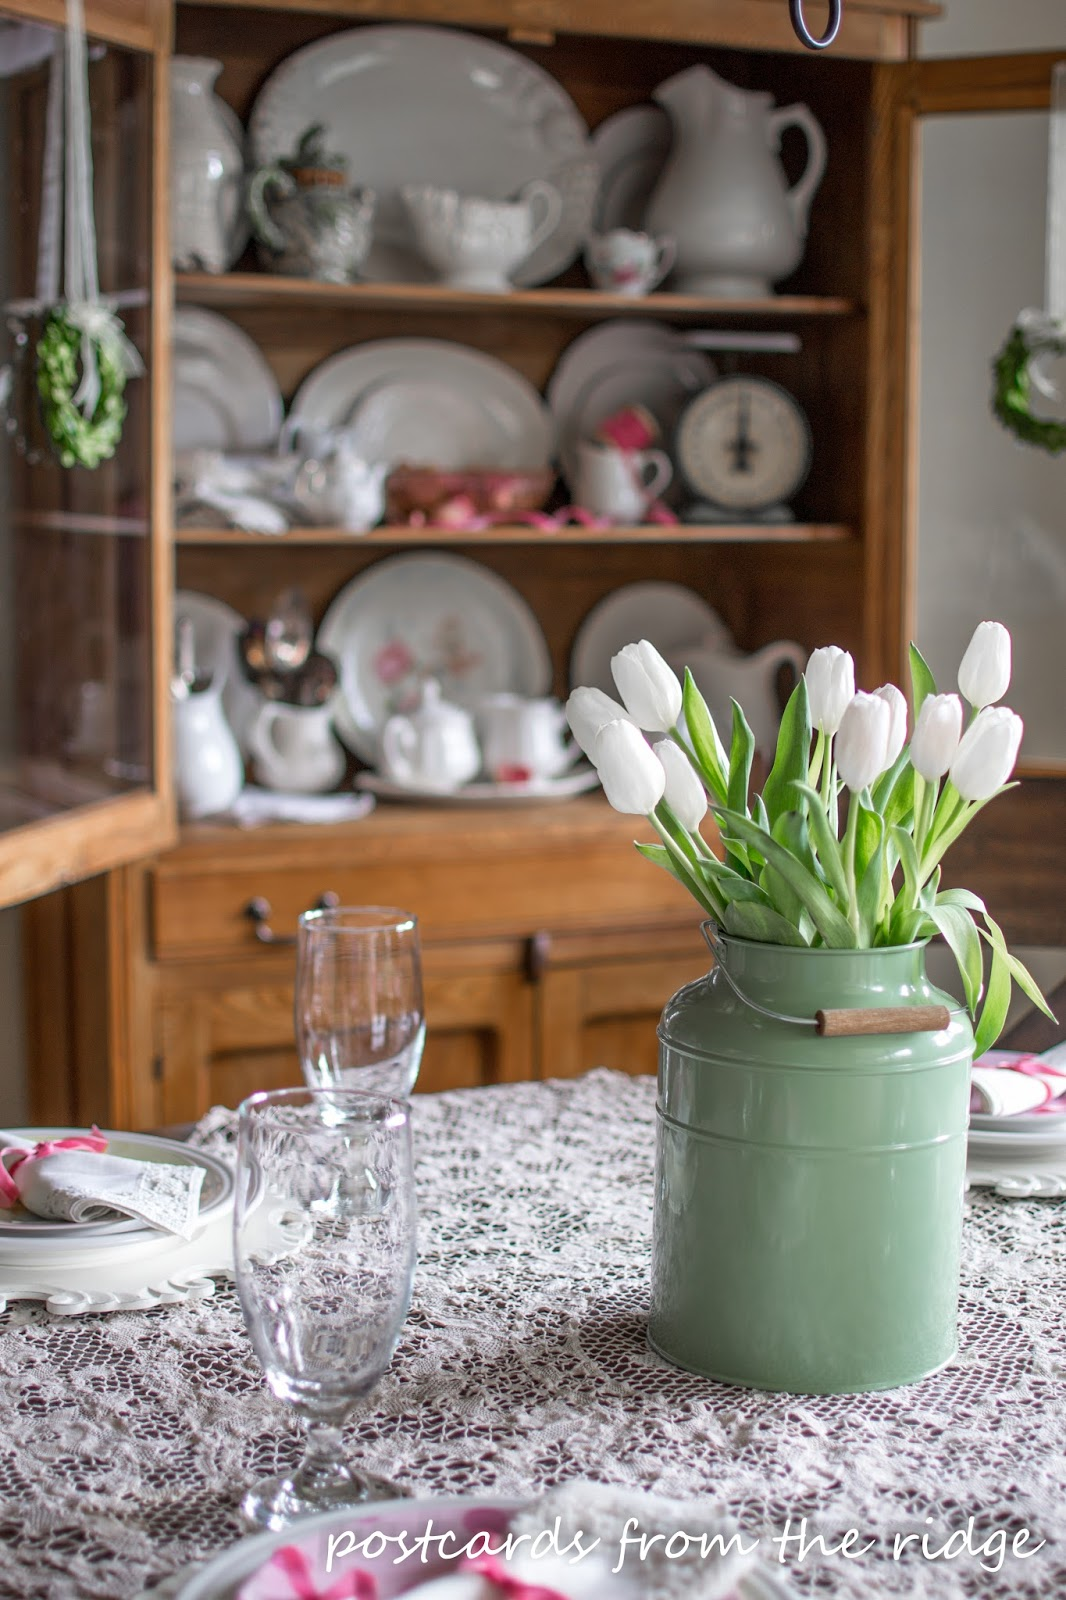 Using vintage finds and fresh white tulips for a spring table.